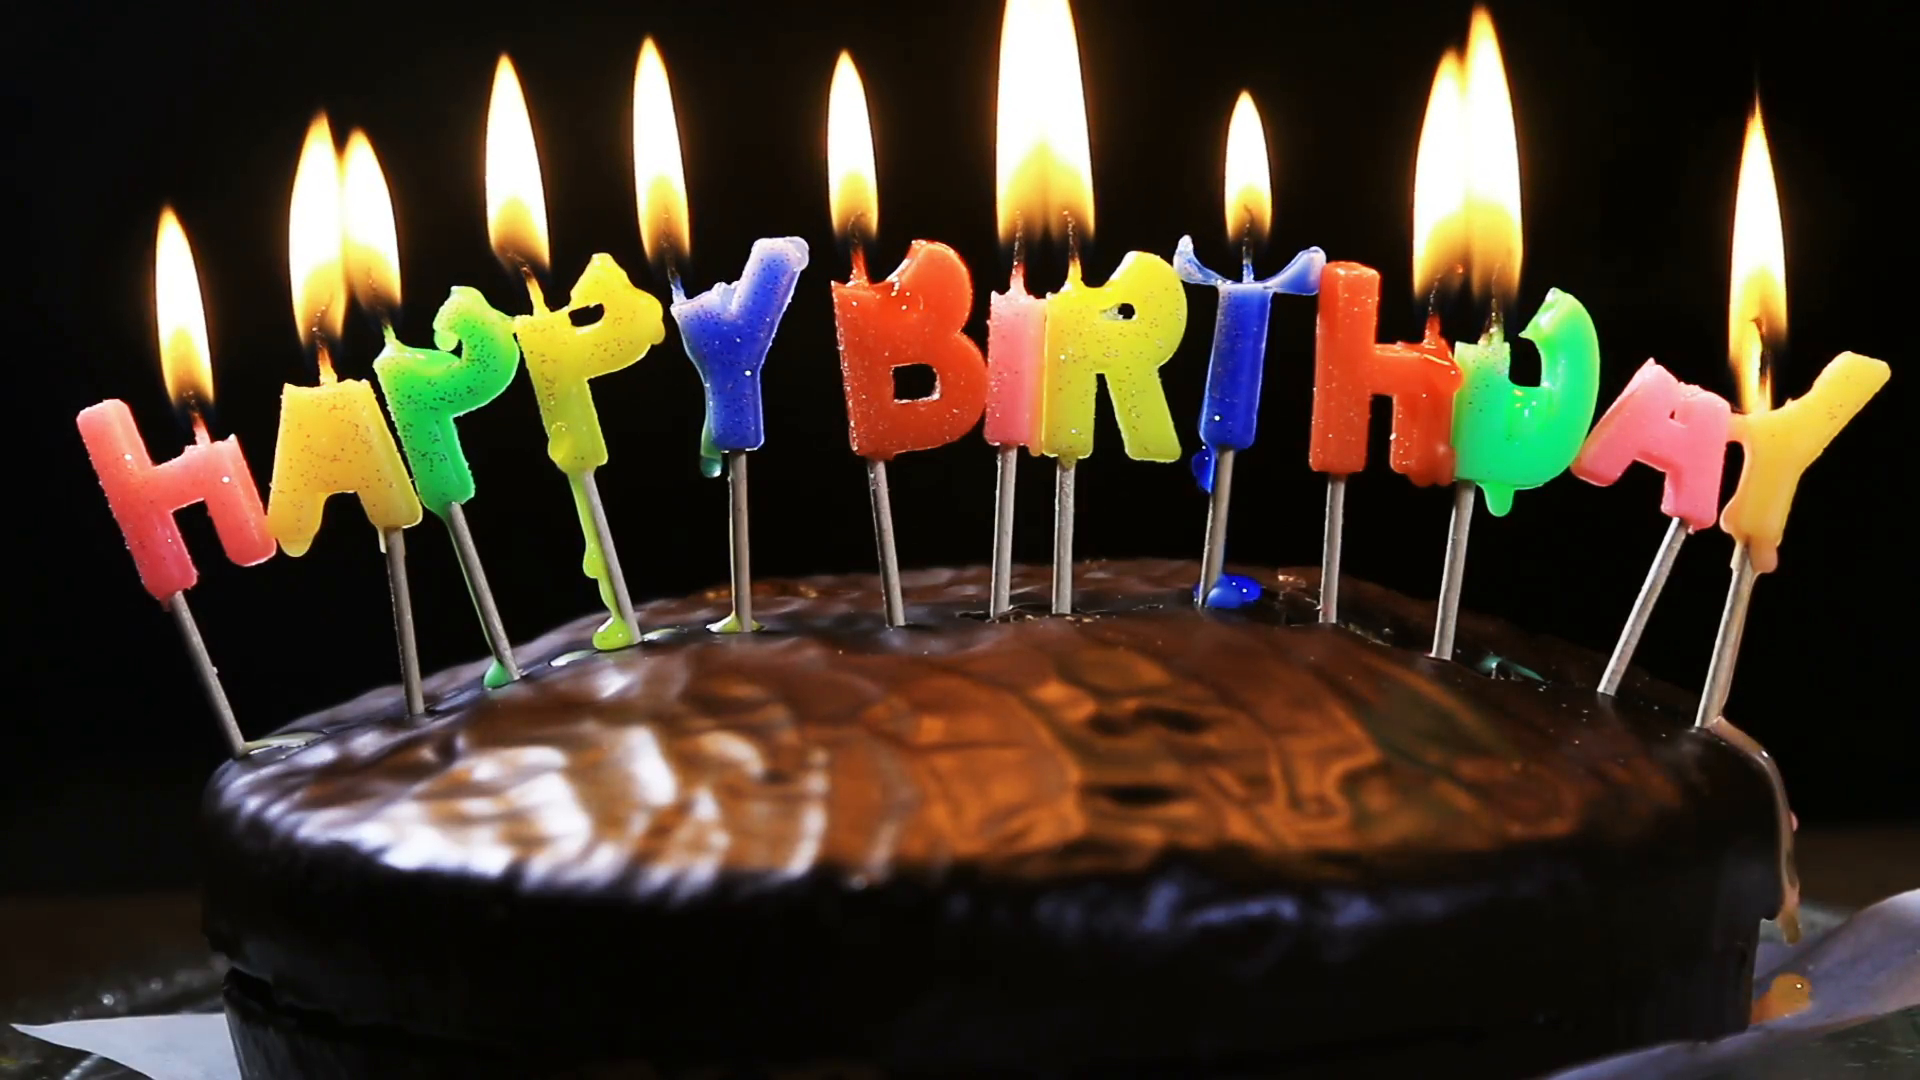 Happy Birthday Cake With Candles Lighted Candles On A Happy Birthday Cake Candles With The Words